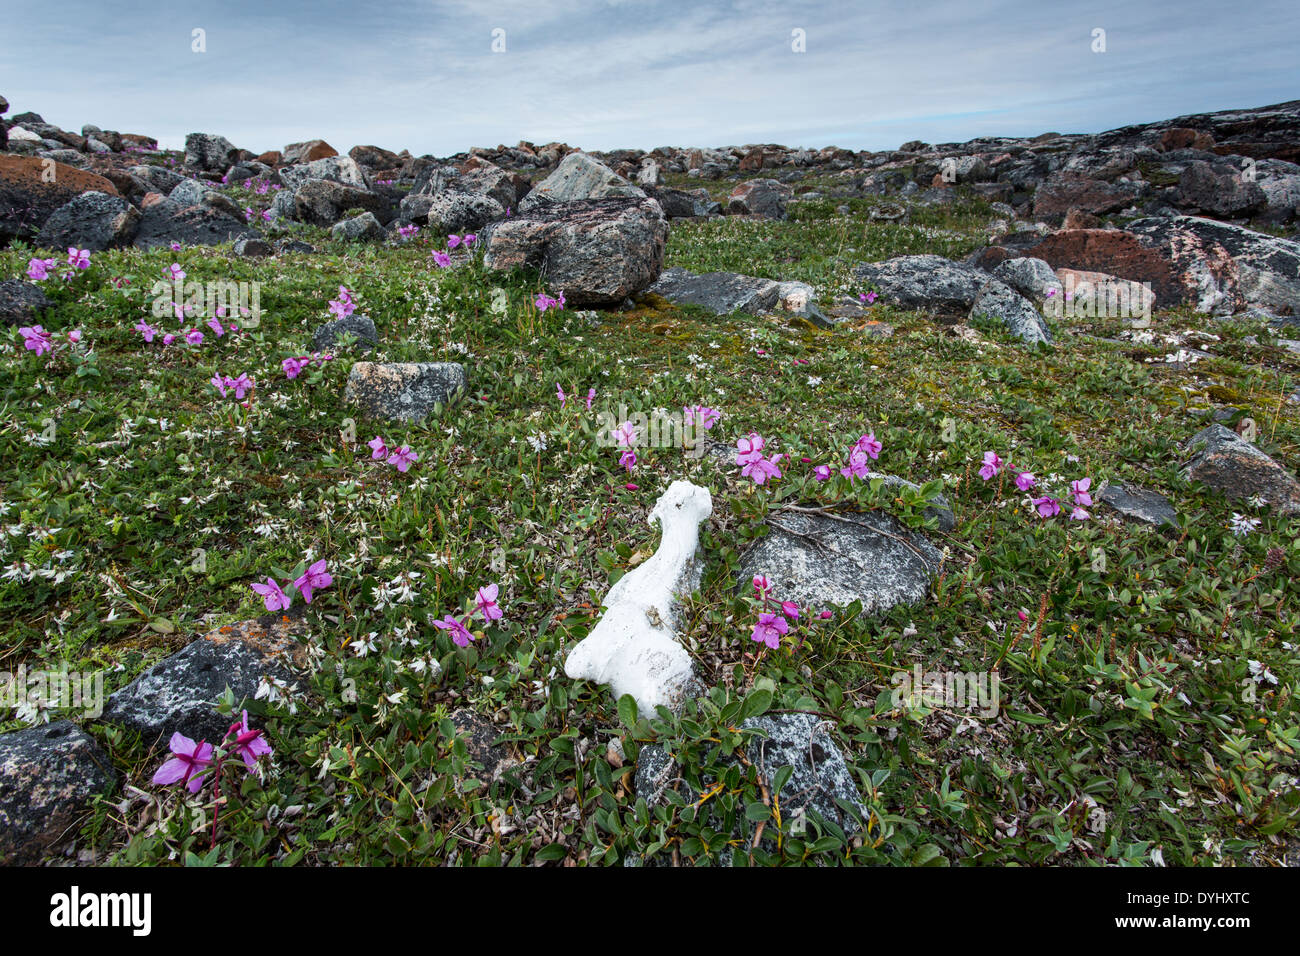 Canada Nunavut Territory Repulse Bay Caribou bone left by Inuit hunters on tundra among fireweed blossoms on island along - Stock Image